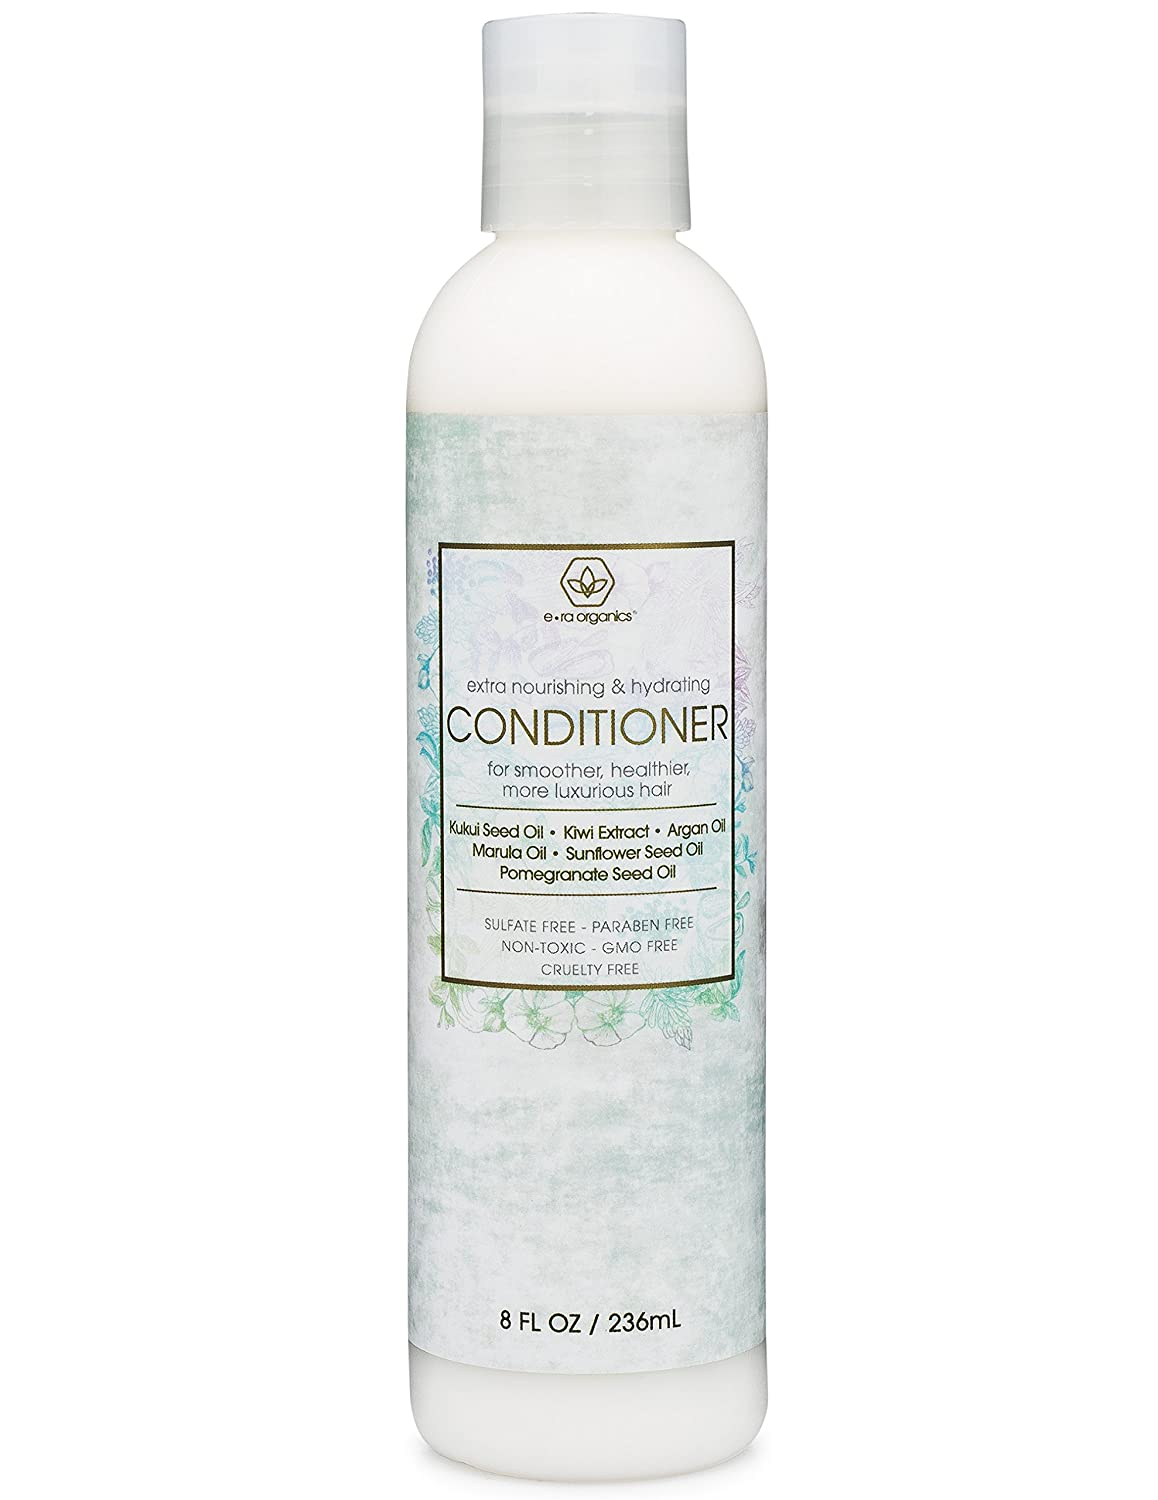 Premium Natural Hair Conditioner 8oz. Extra Moisturizing & Volumizing Conditioner for Brittle, Damaged, Dry Hair With Argan Oil, Kukui Seed, Kiwi & Pomegranate for Softer, Healthier, Luxurious Hair.